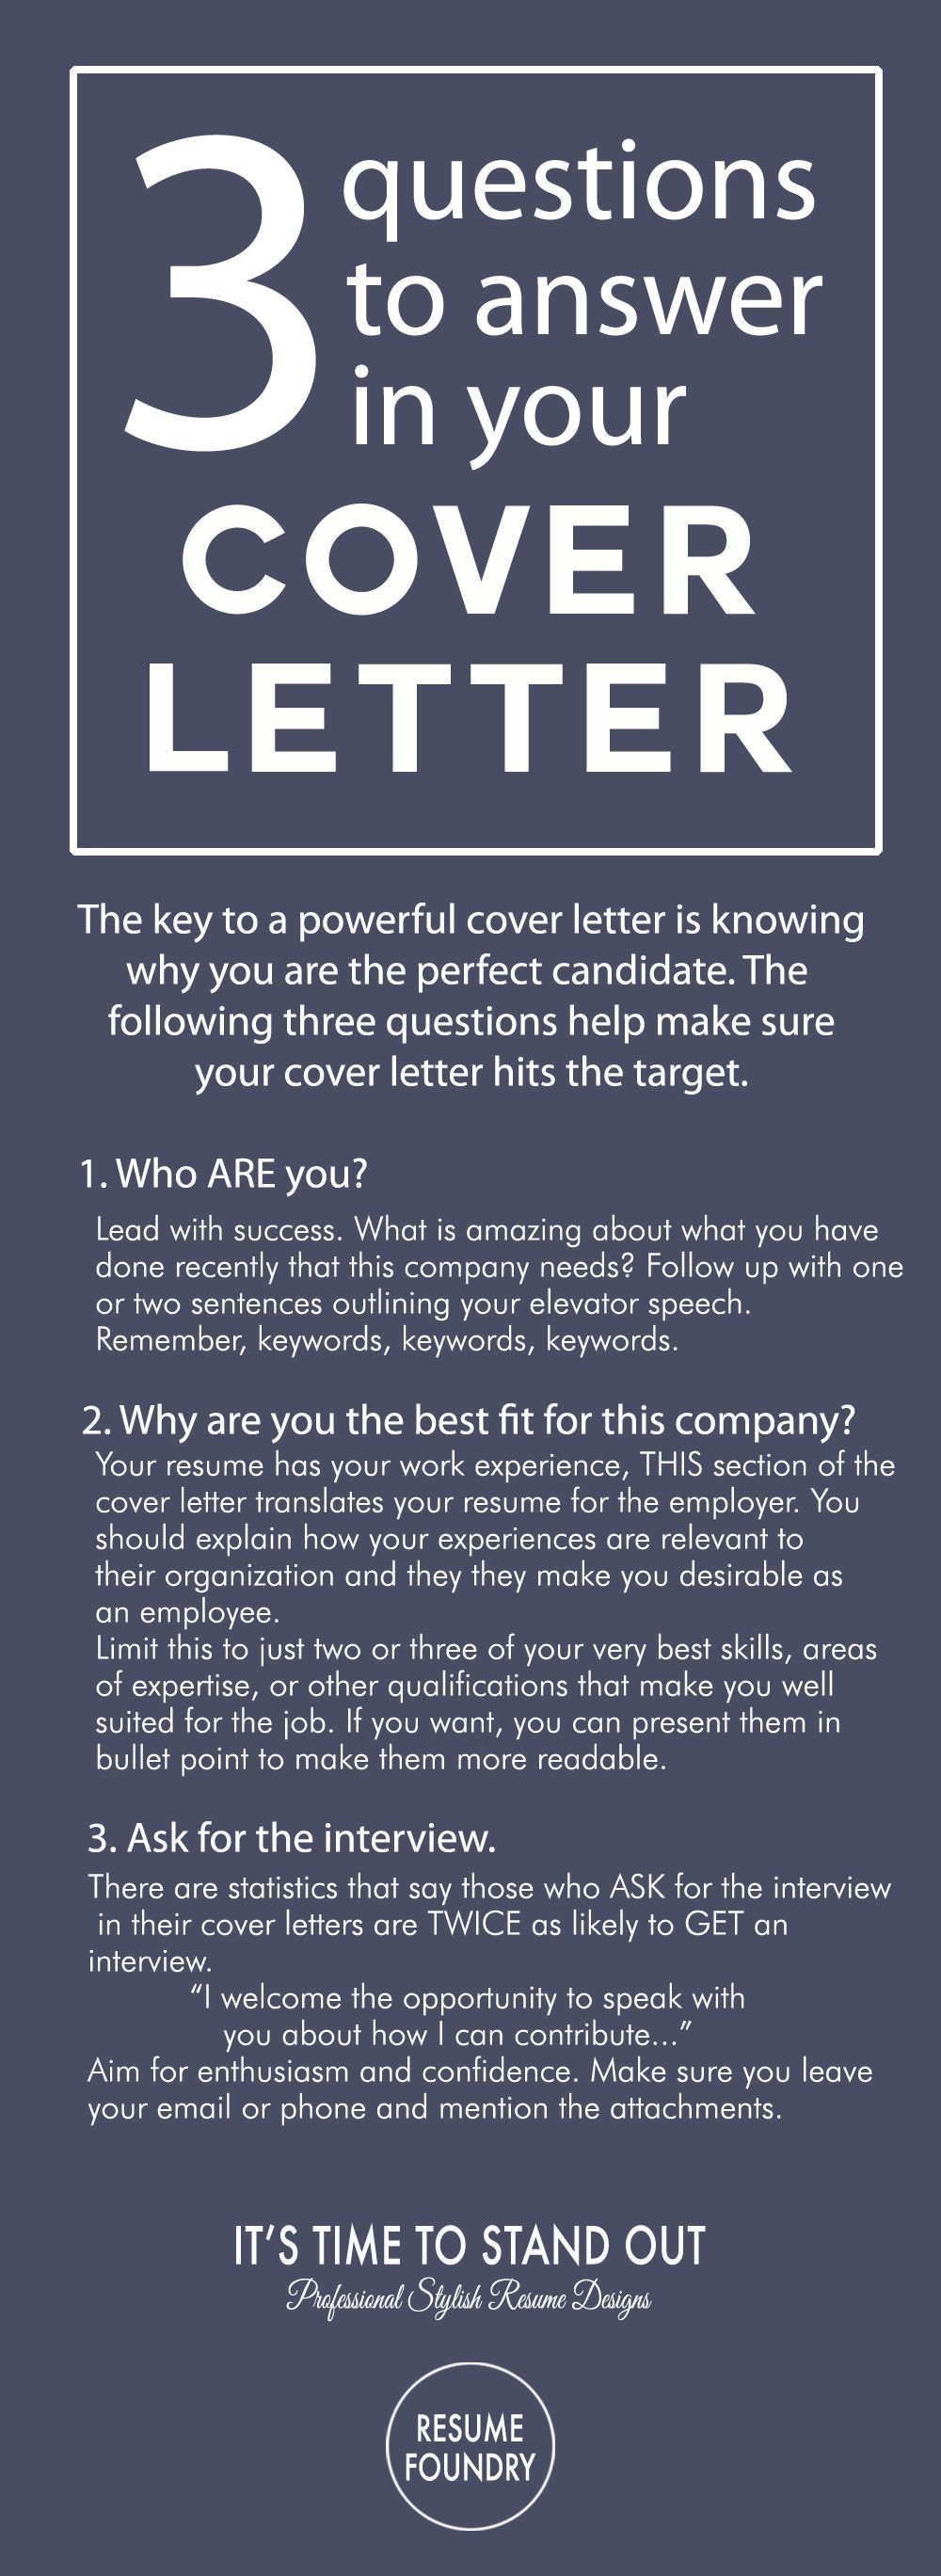 Cover letter tips outline how to write a cover letter career cover letter tips outline how to write a cover letter madrichimfo Choice Image